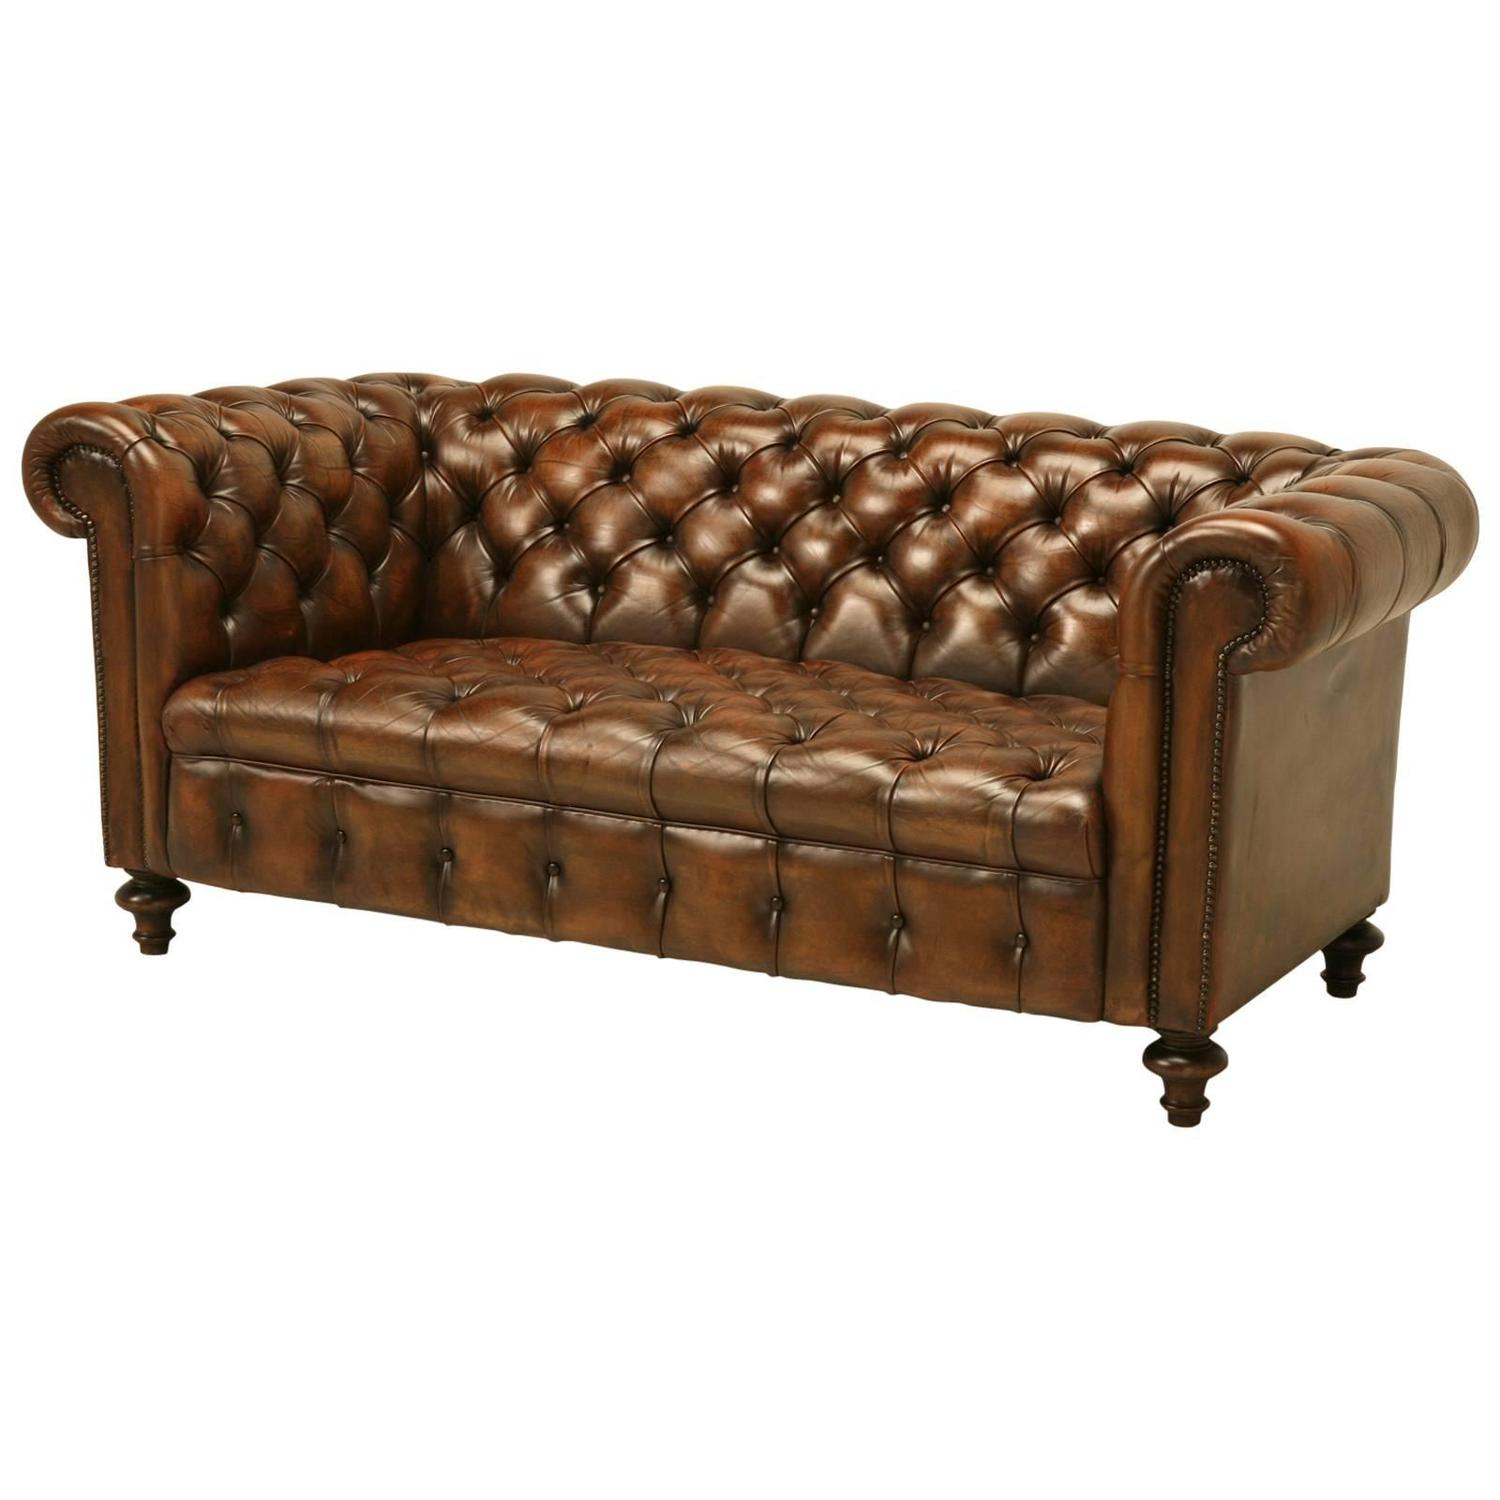 Chesterfield Leather Sofa Used Vintage Chesterfield Tufted Leather Sofa At 1stdibs